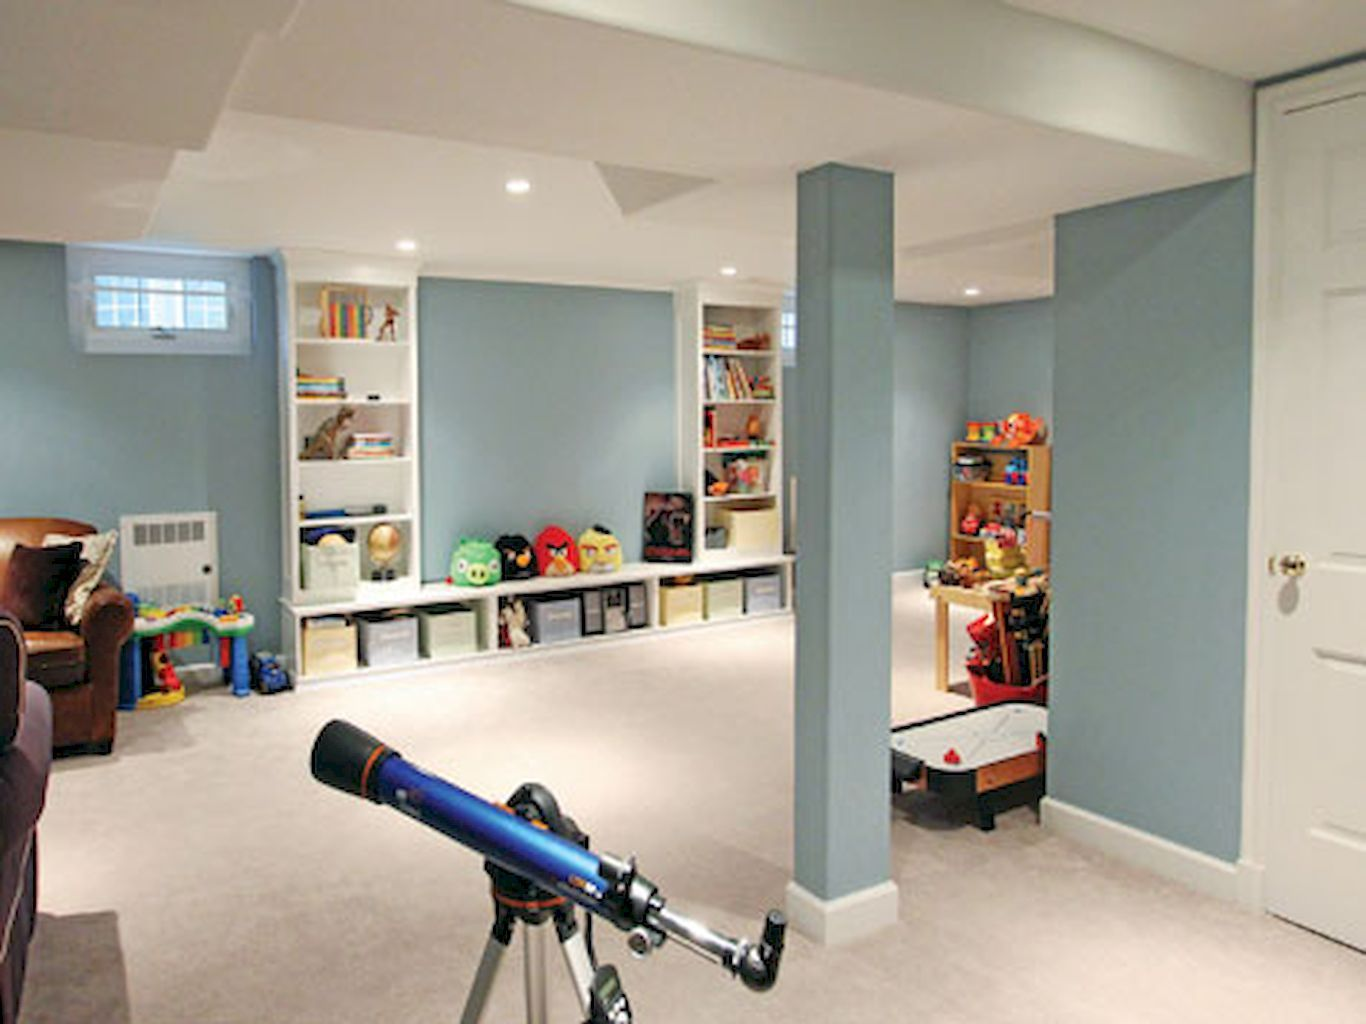 Basement Ideas For Kids Area. 75 Creative Basement Playroom Design Ideas for Kids